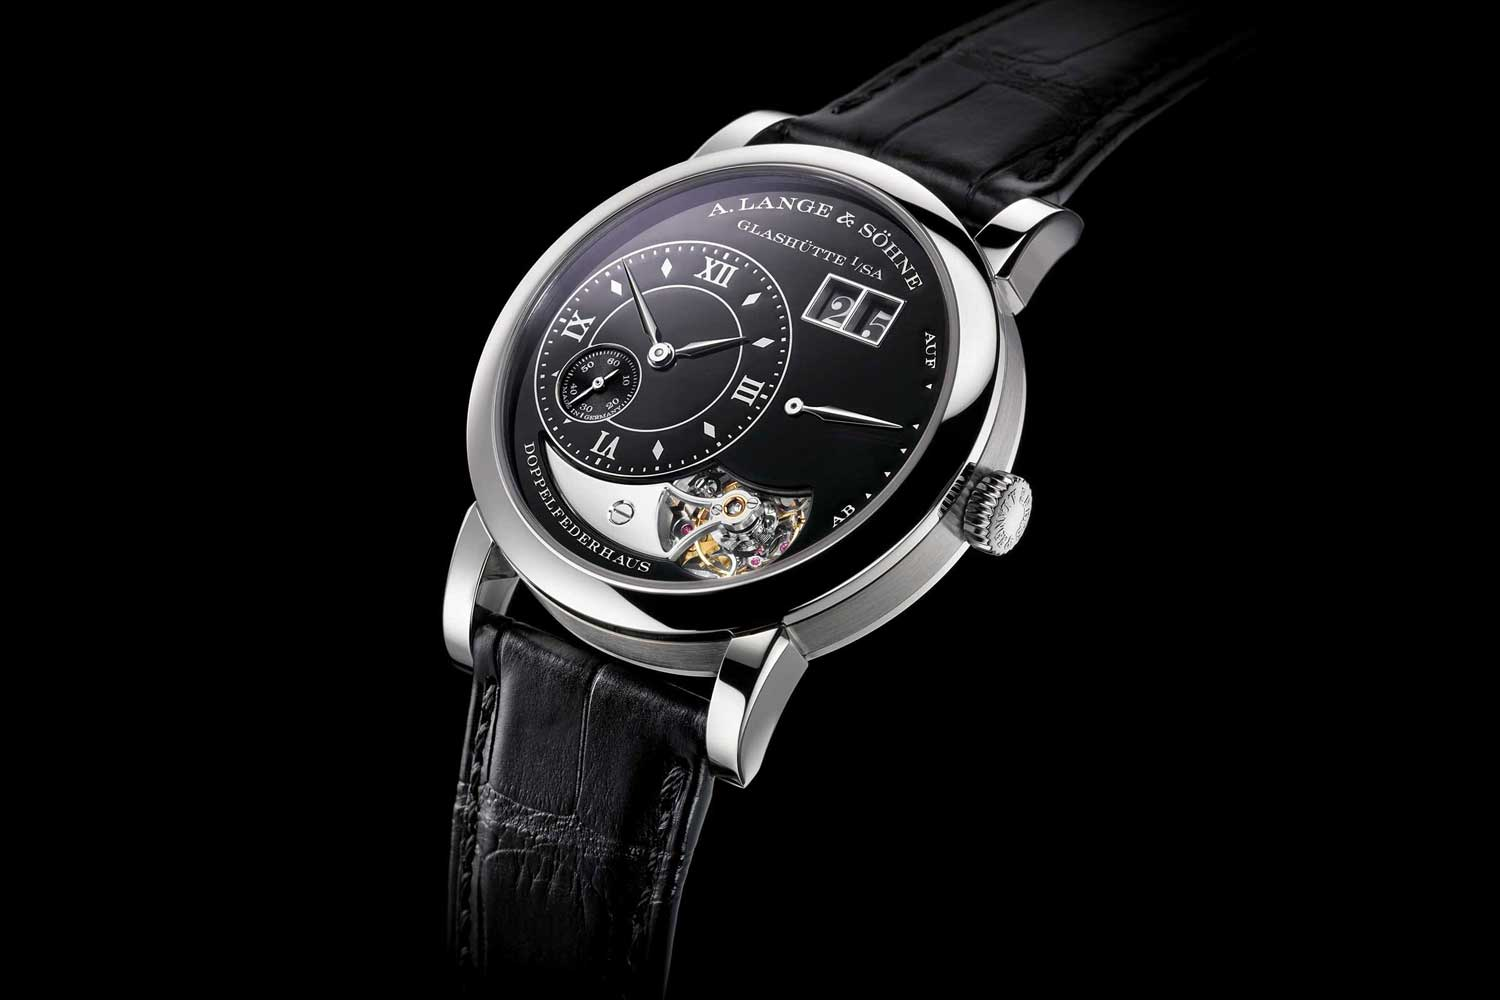 The Lange 1 Tourbillon Handwerkskunst reference 704.048 with a black-enamelled white gold dial (limited to 20)